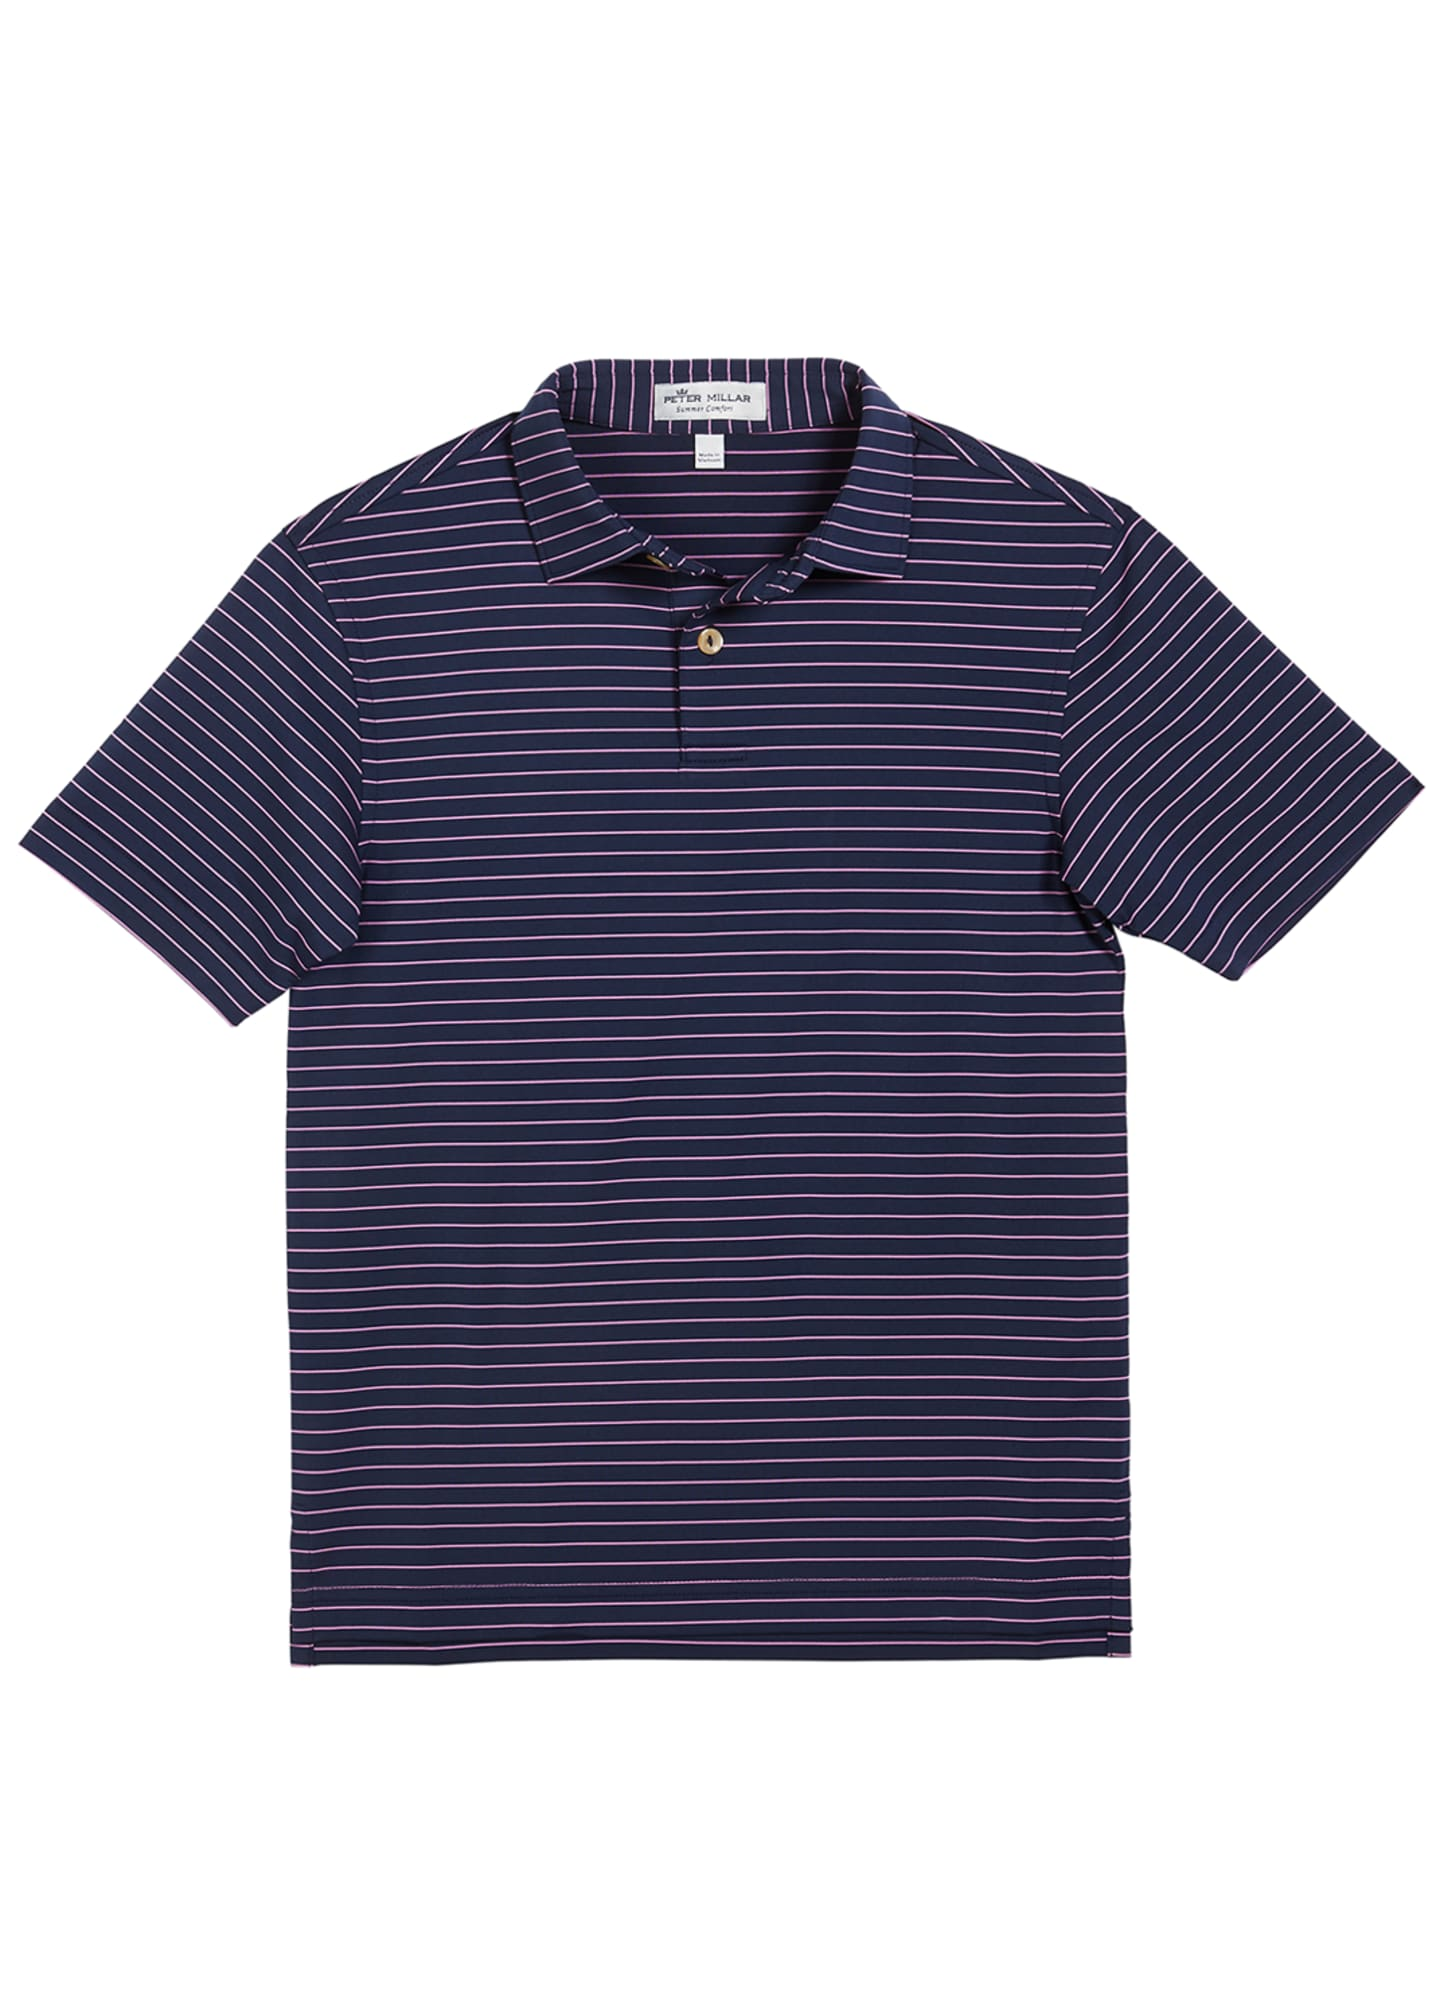 Peter Millar Boy's Crafty Stripe Polo Shirt, Size